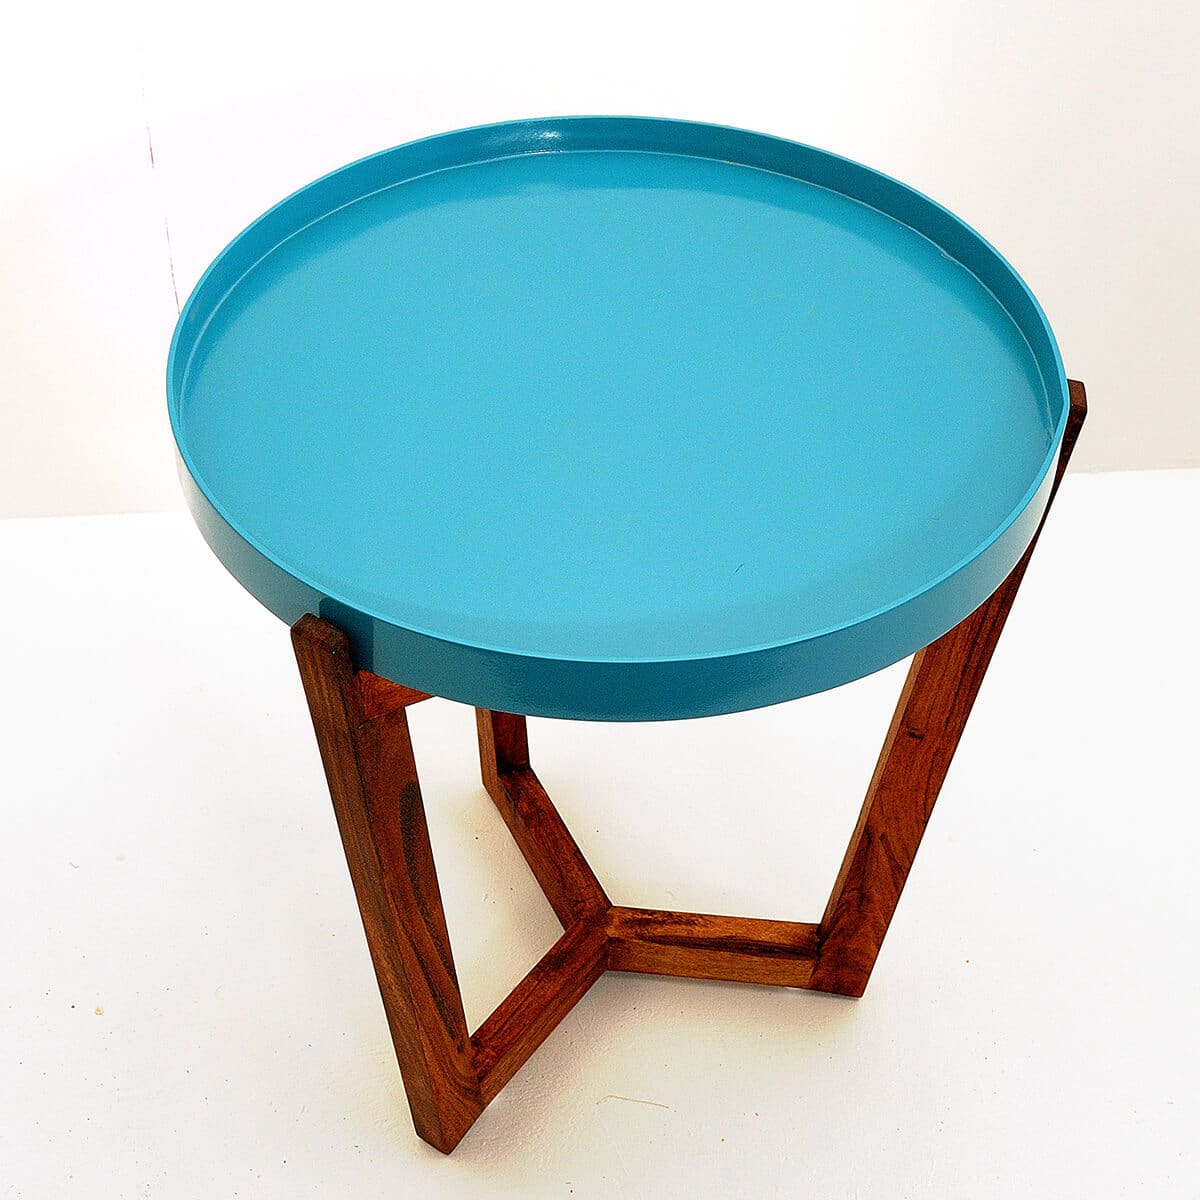 table de chevet kirsk baobab marron bleu zeeloft